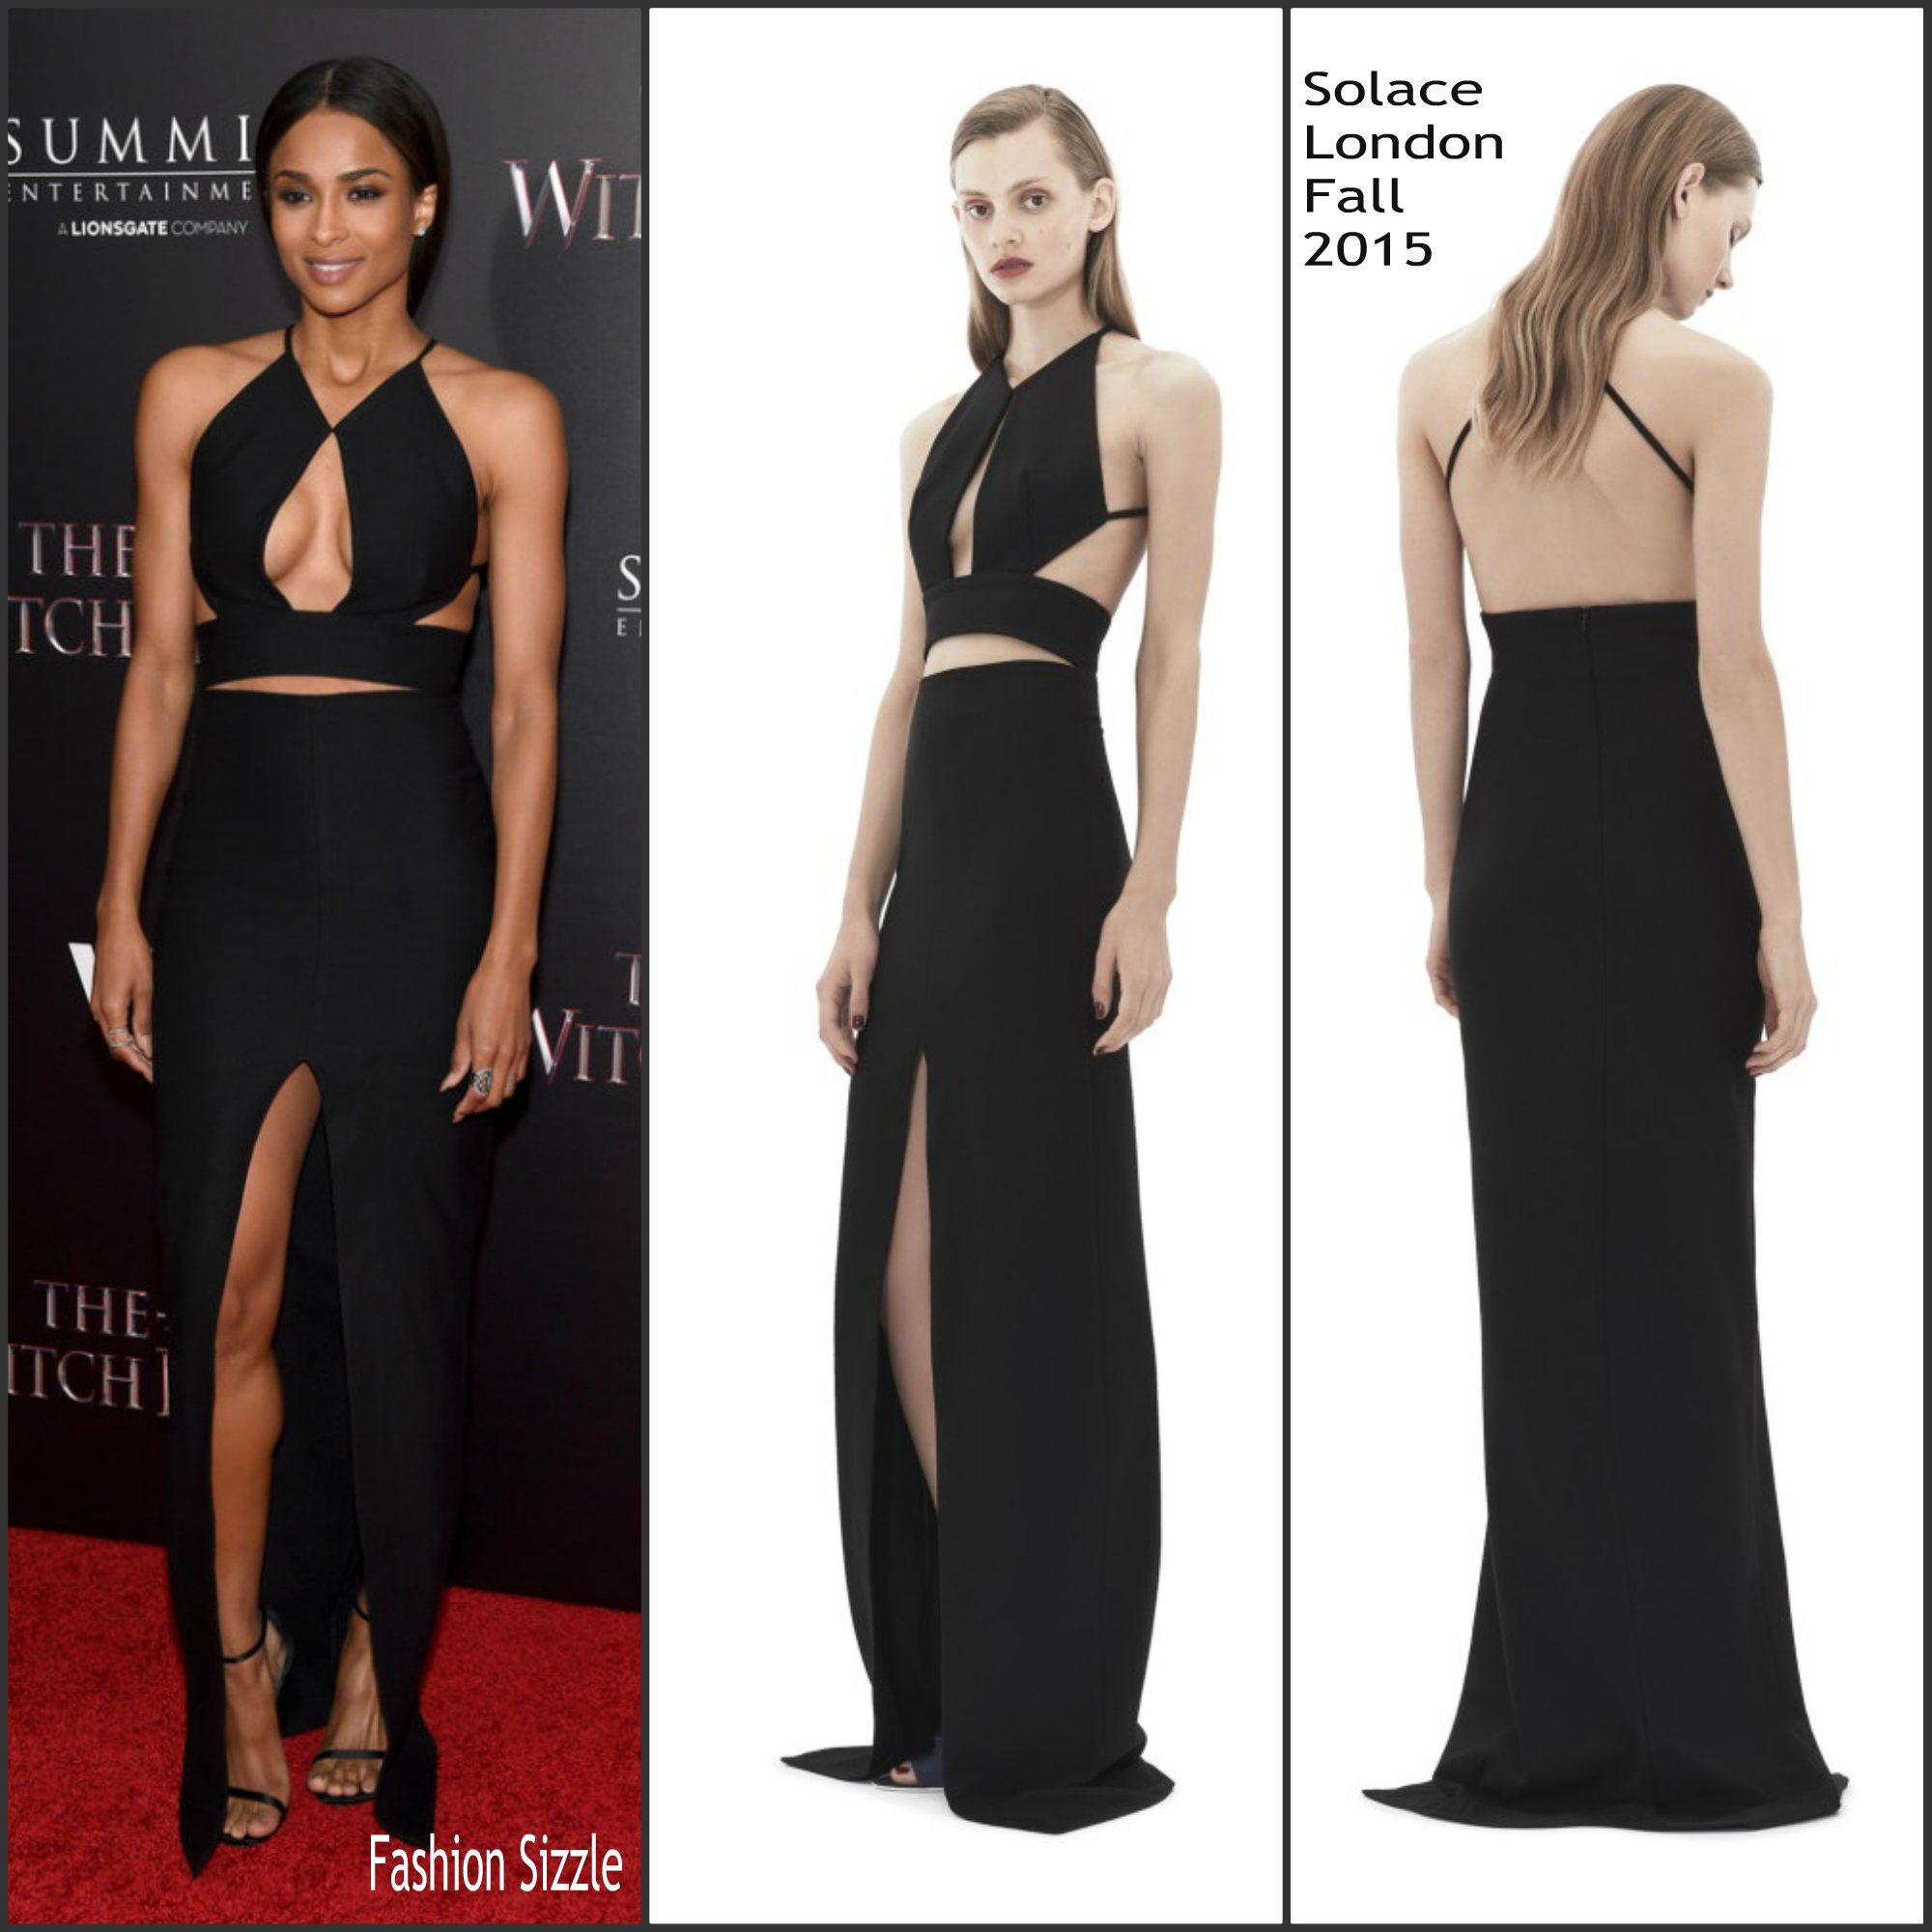 ciara-in-solace-london-the-last-witch-hunter-new-york-premiere